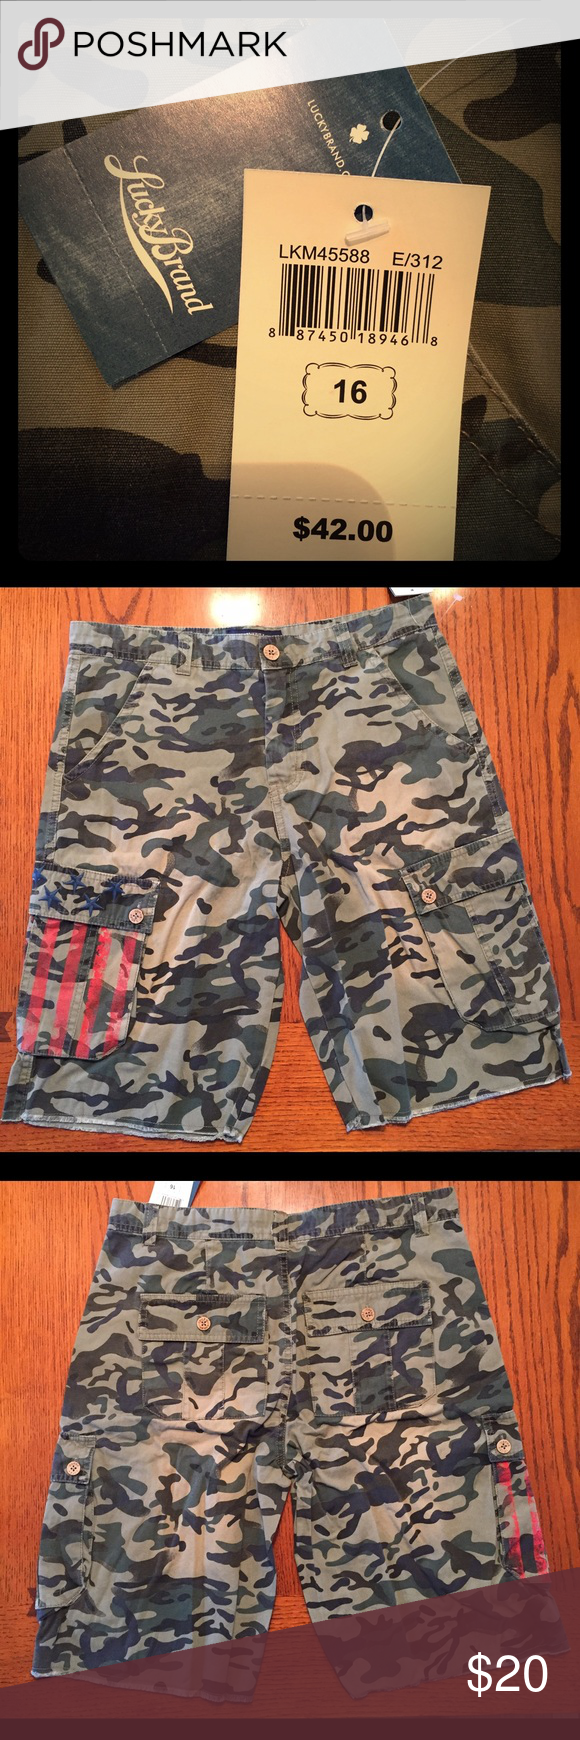 New Boys Lucky Brand Camo shorts Boys Lucky Brand Camo shorts with stitched blue stars and printed red stripes on one pocket. Lucky Brand Bottoms Shorts